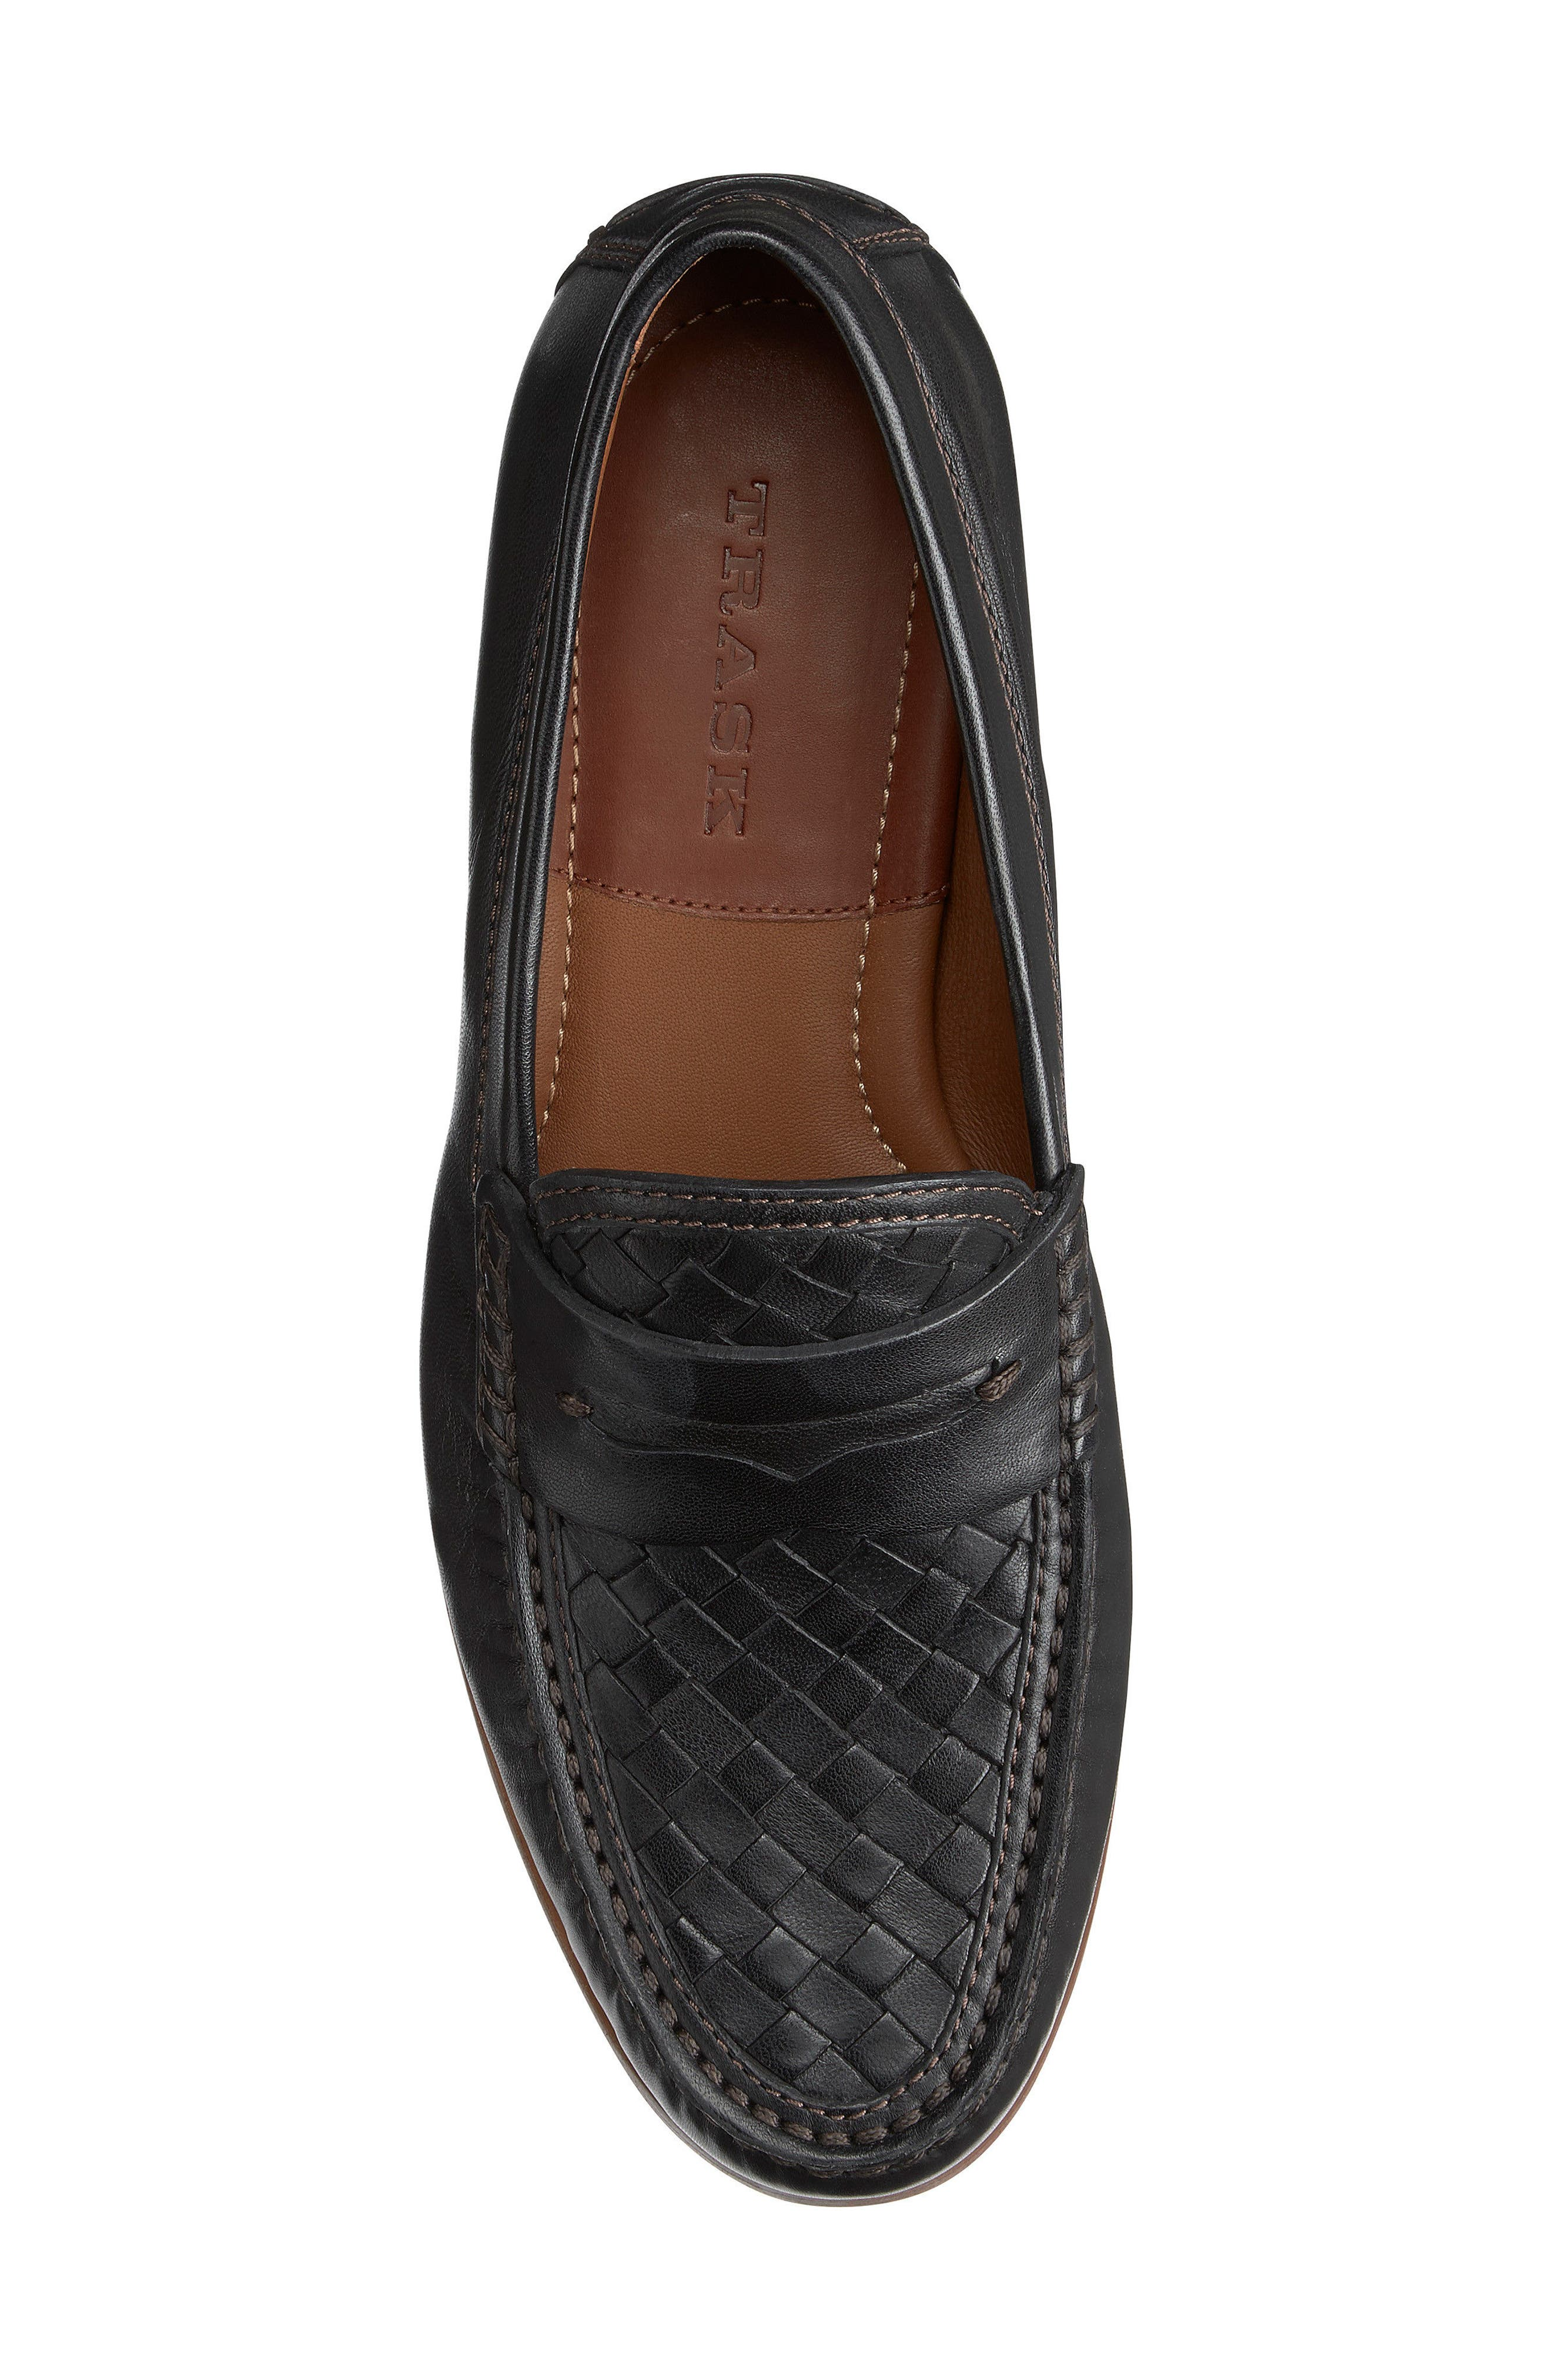 Slade Water Resistant Woven Penny Loafer,                             Alternate thumbnail 5, color,                             BLACK LEATHER